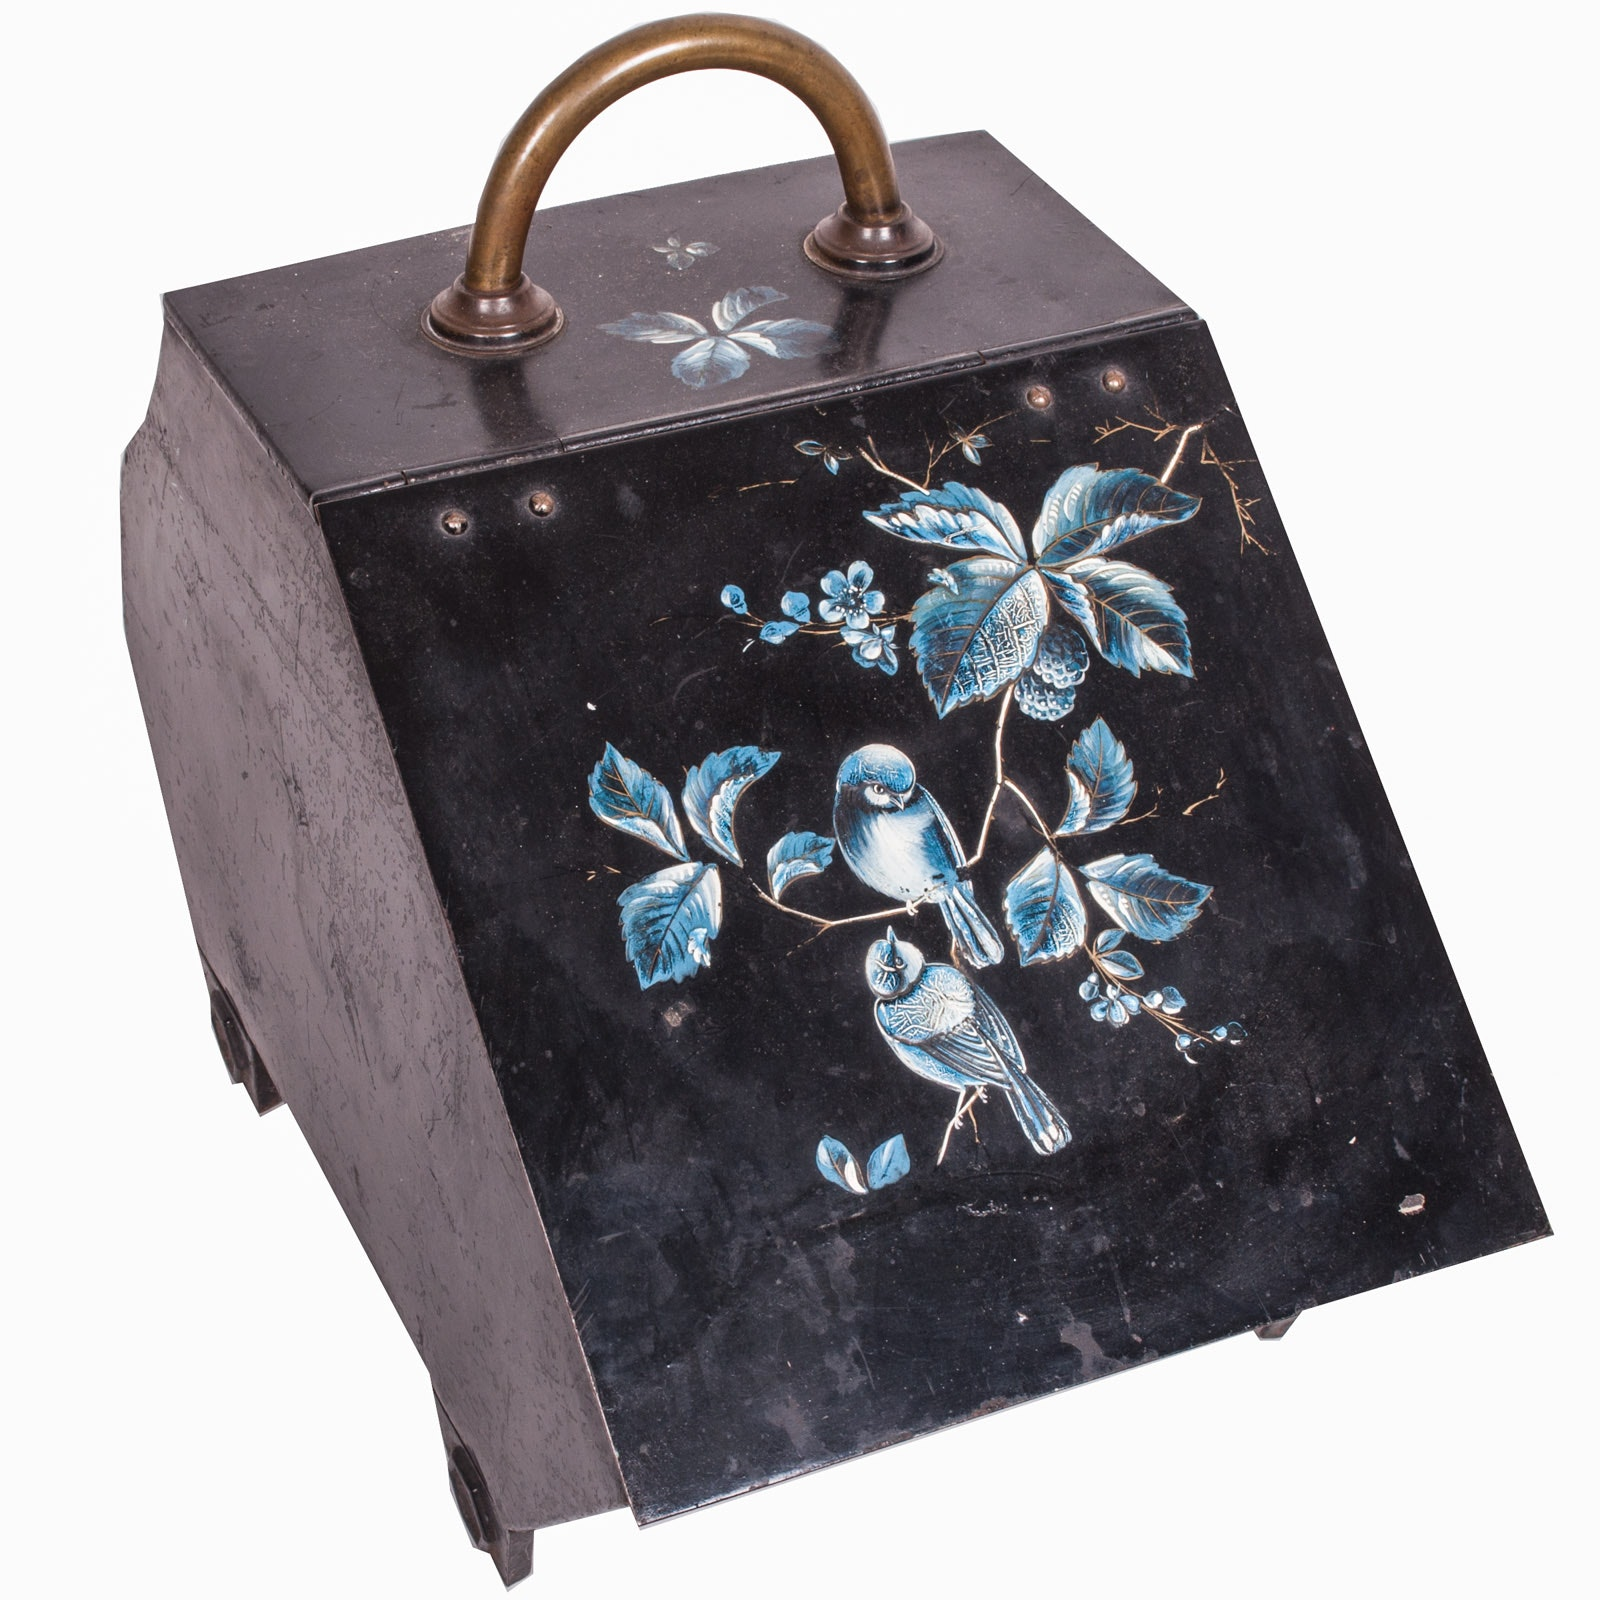 Vintage Metal Firestarter with Blue Birds